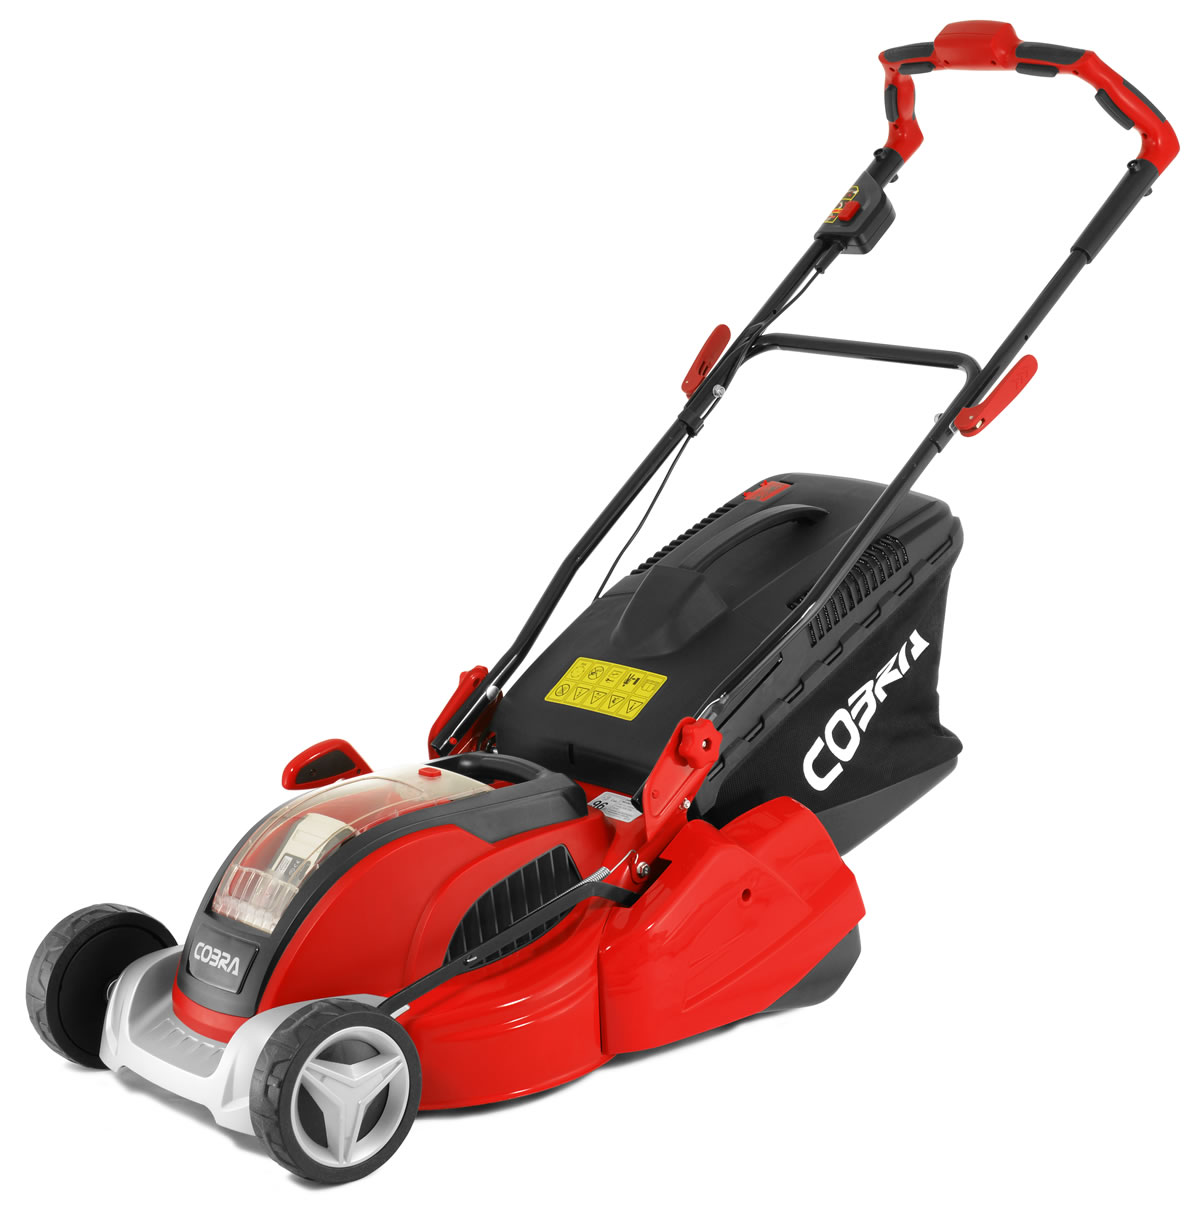 Cobra RM4140V Li-ion Lawnmower